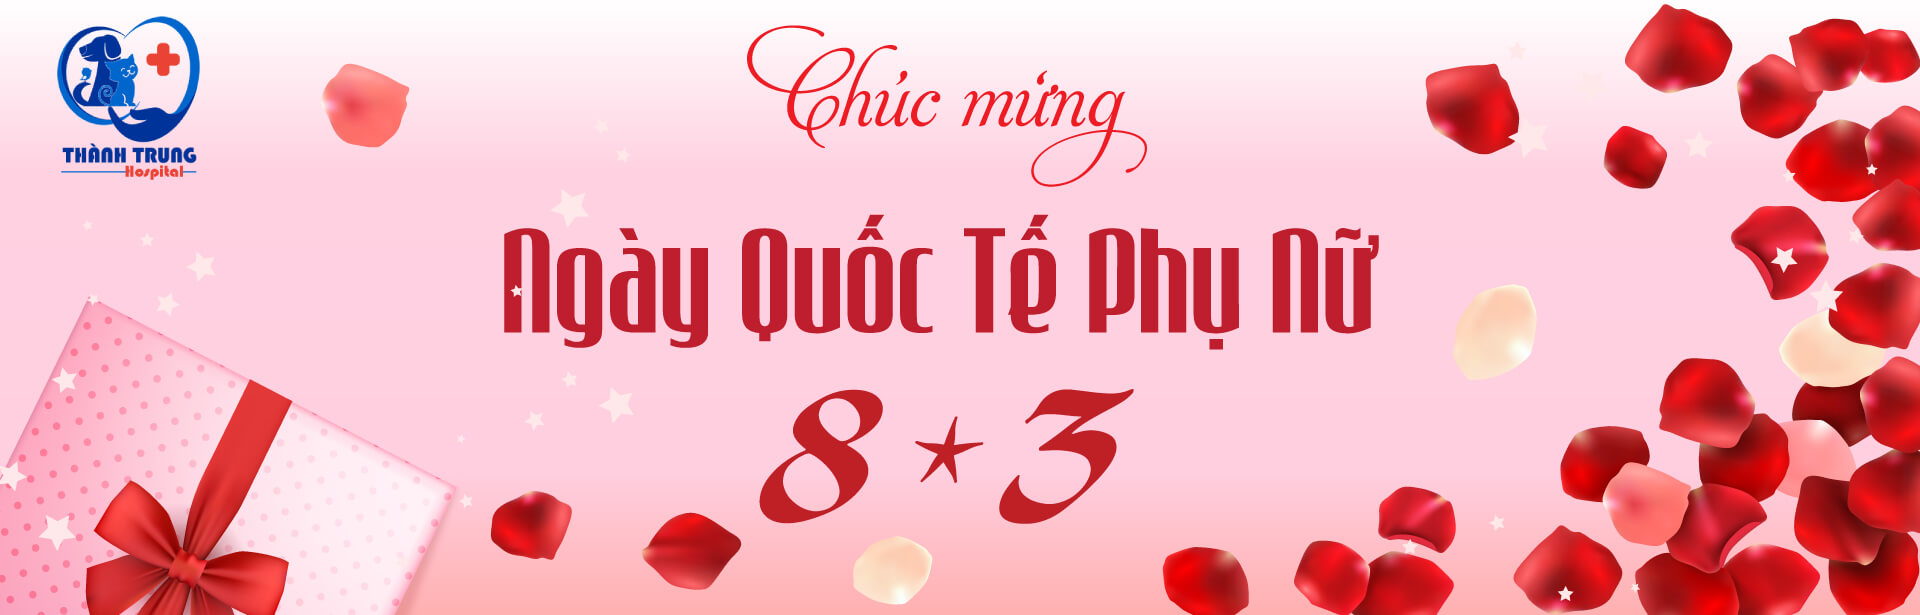 Thuythanhtrung-banner-8-3